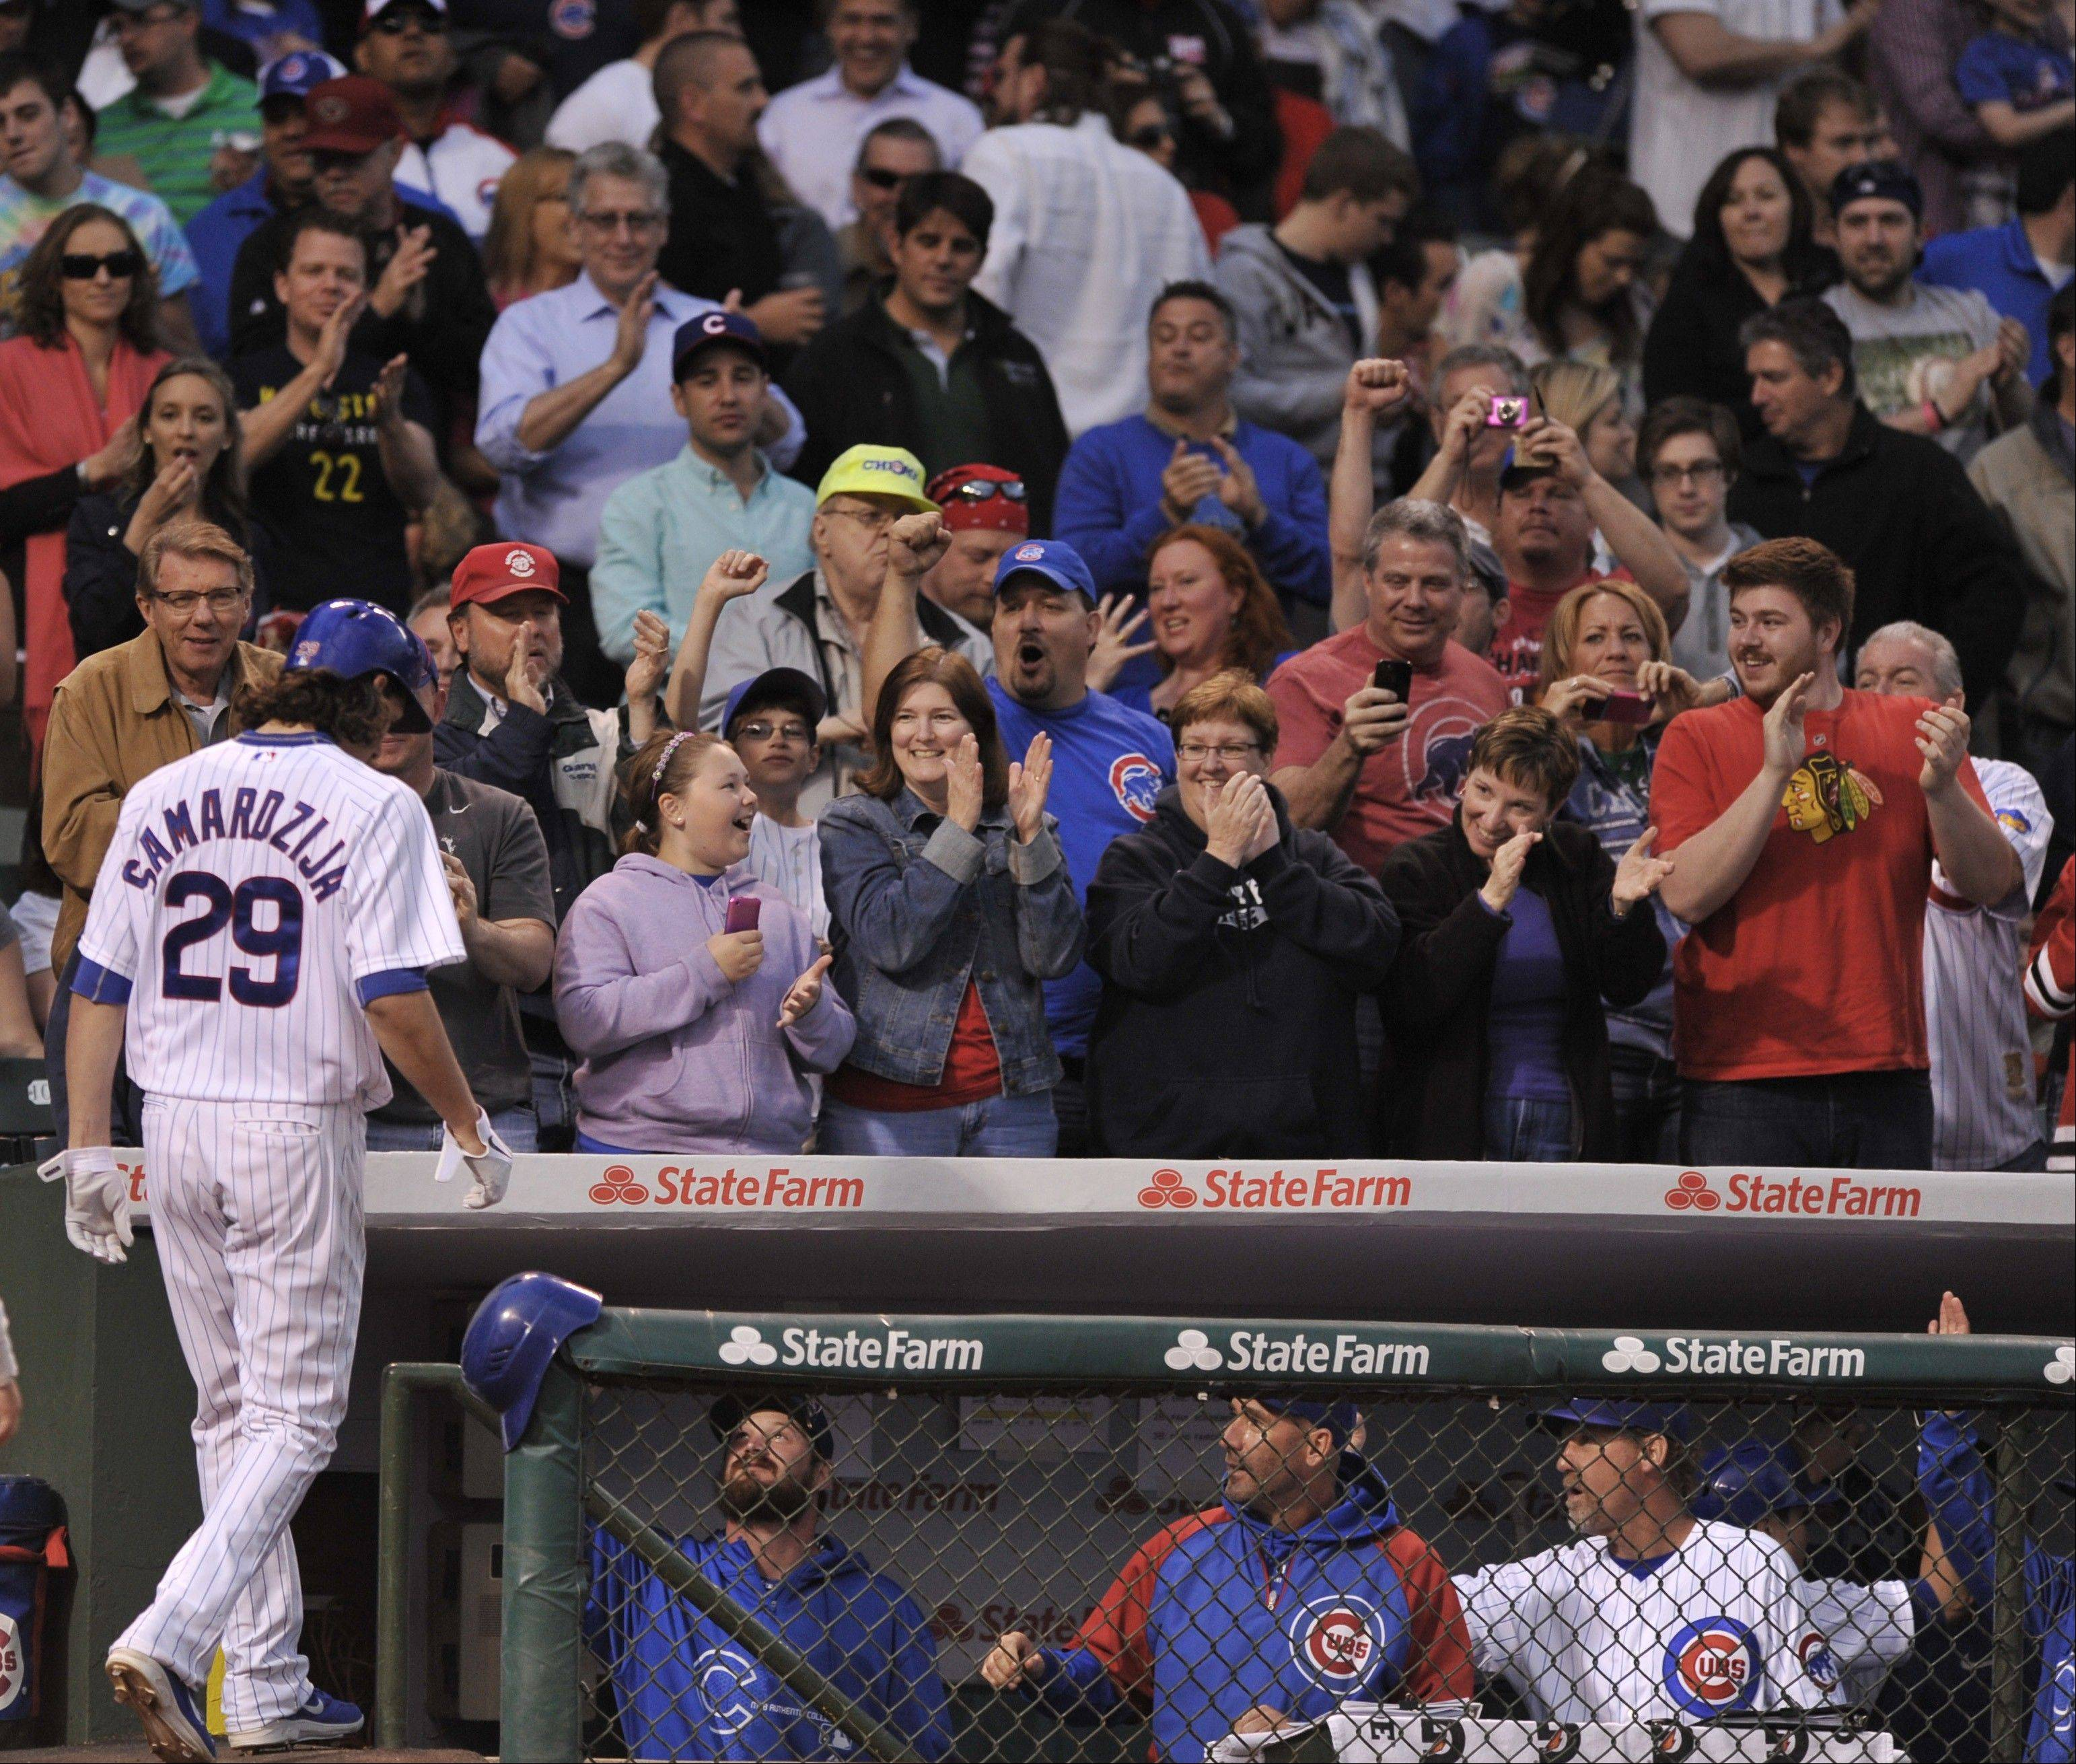 Starting pitching has kept the Cubs in games this season, and fans shown here appreciate everything Jeff Samardzija has given, including a two-run home run against the Colorado Rockies last week.